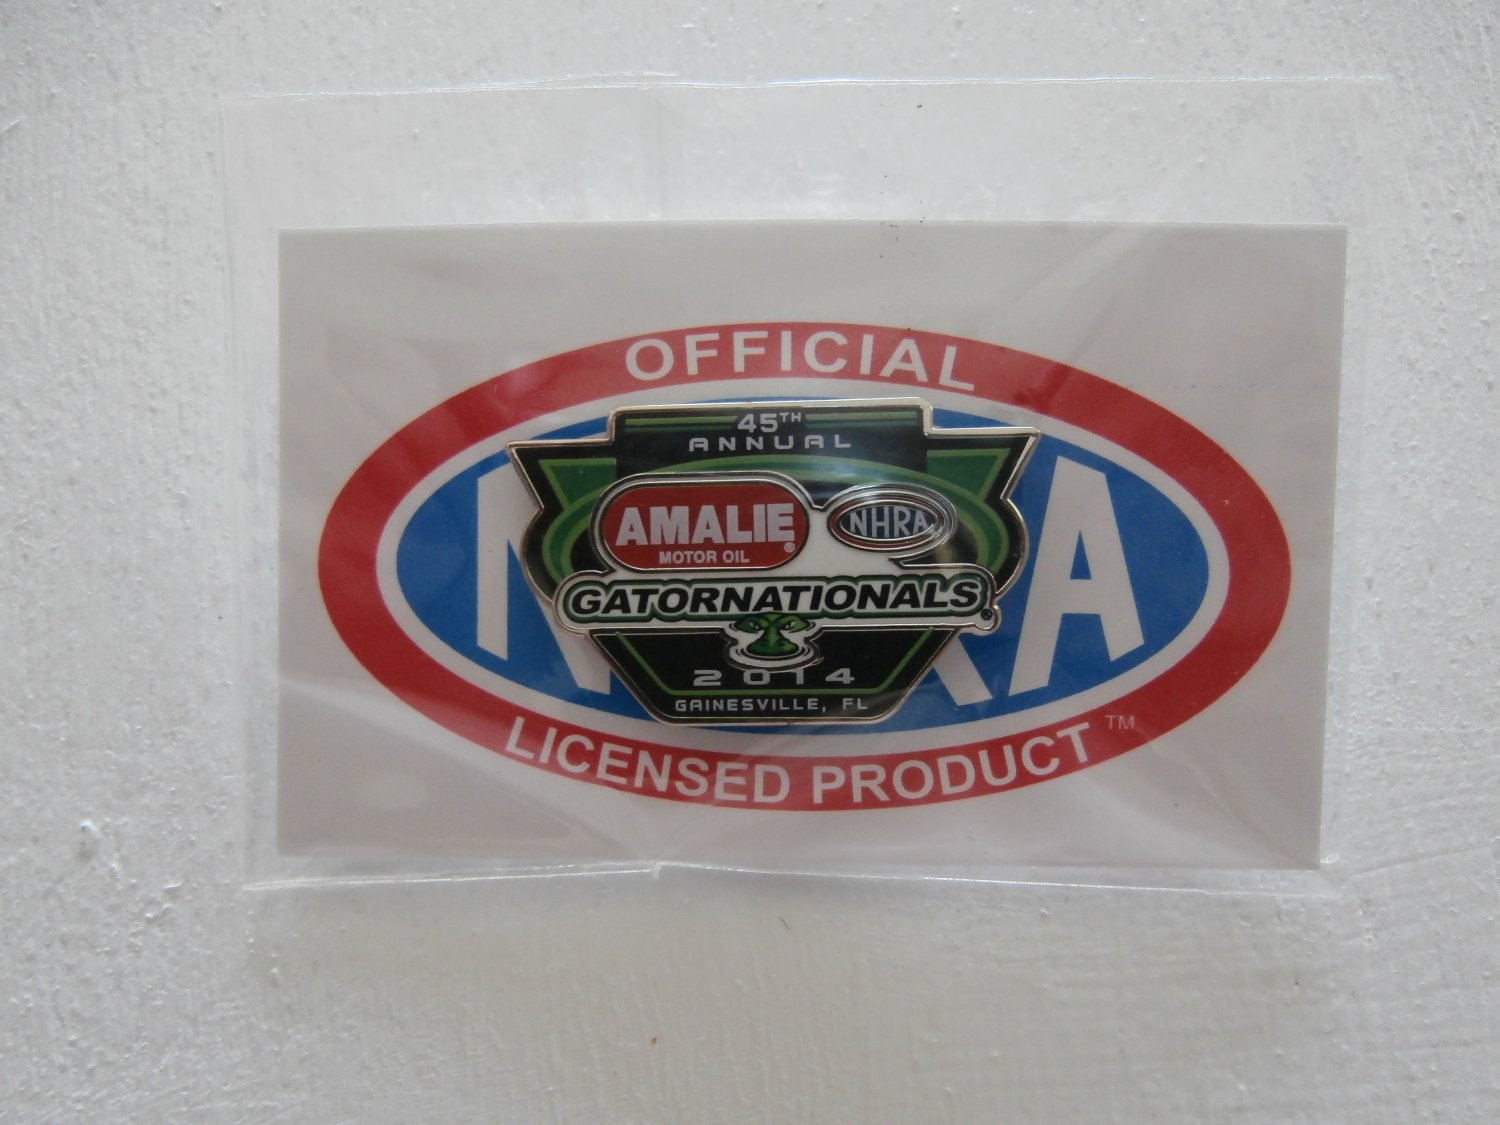 2014 NHRA Event Pin Gainesvile